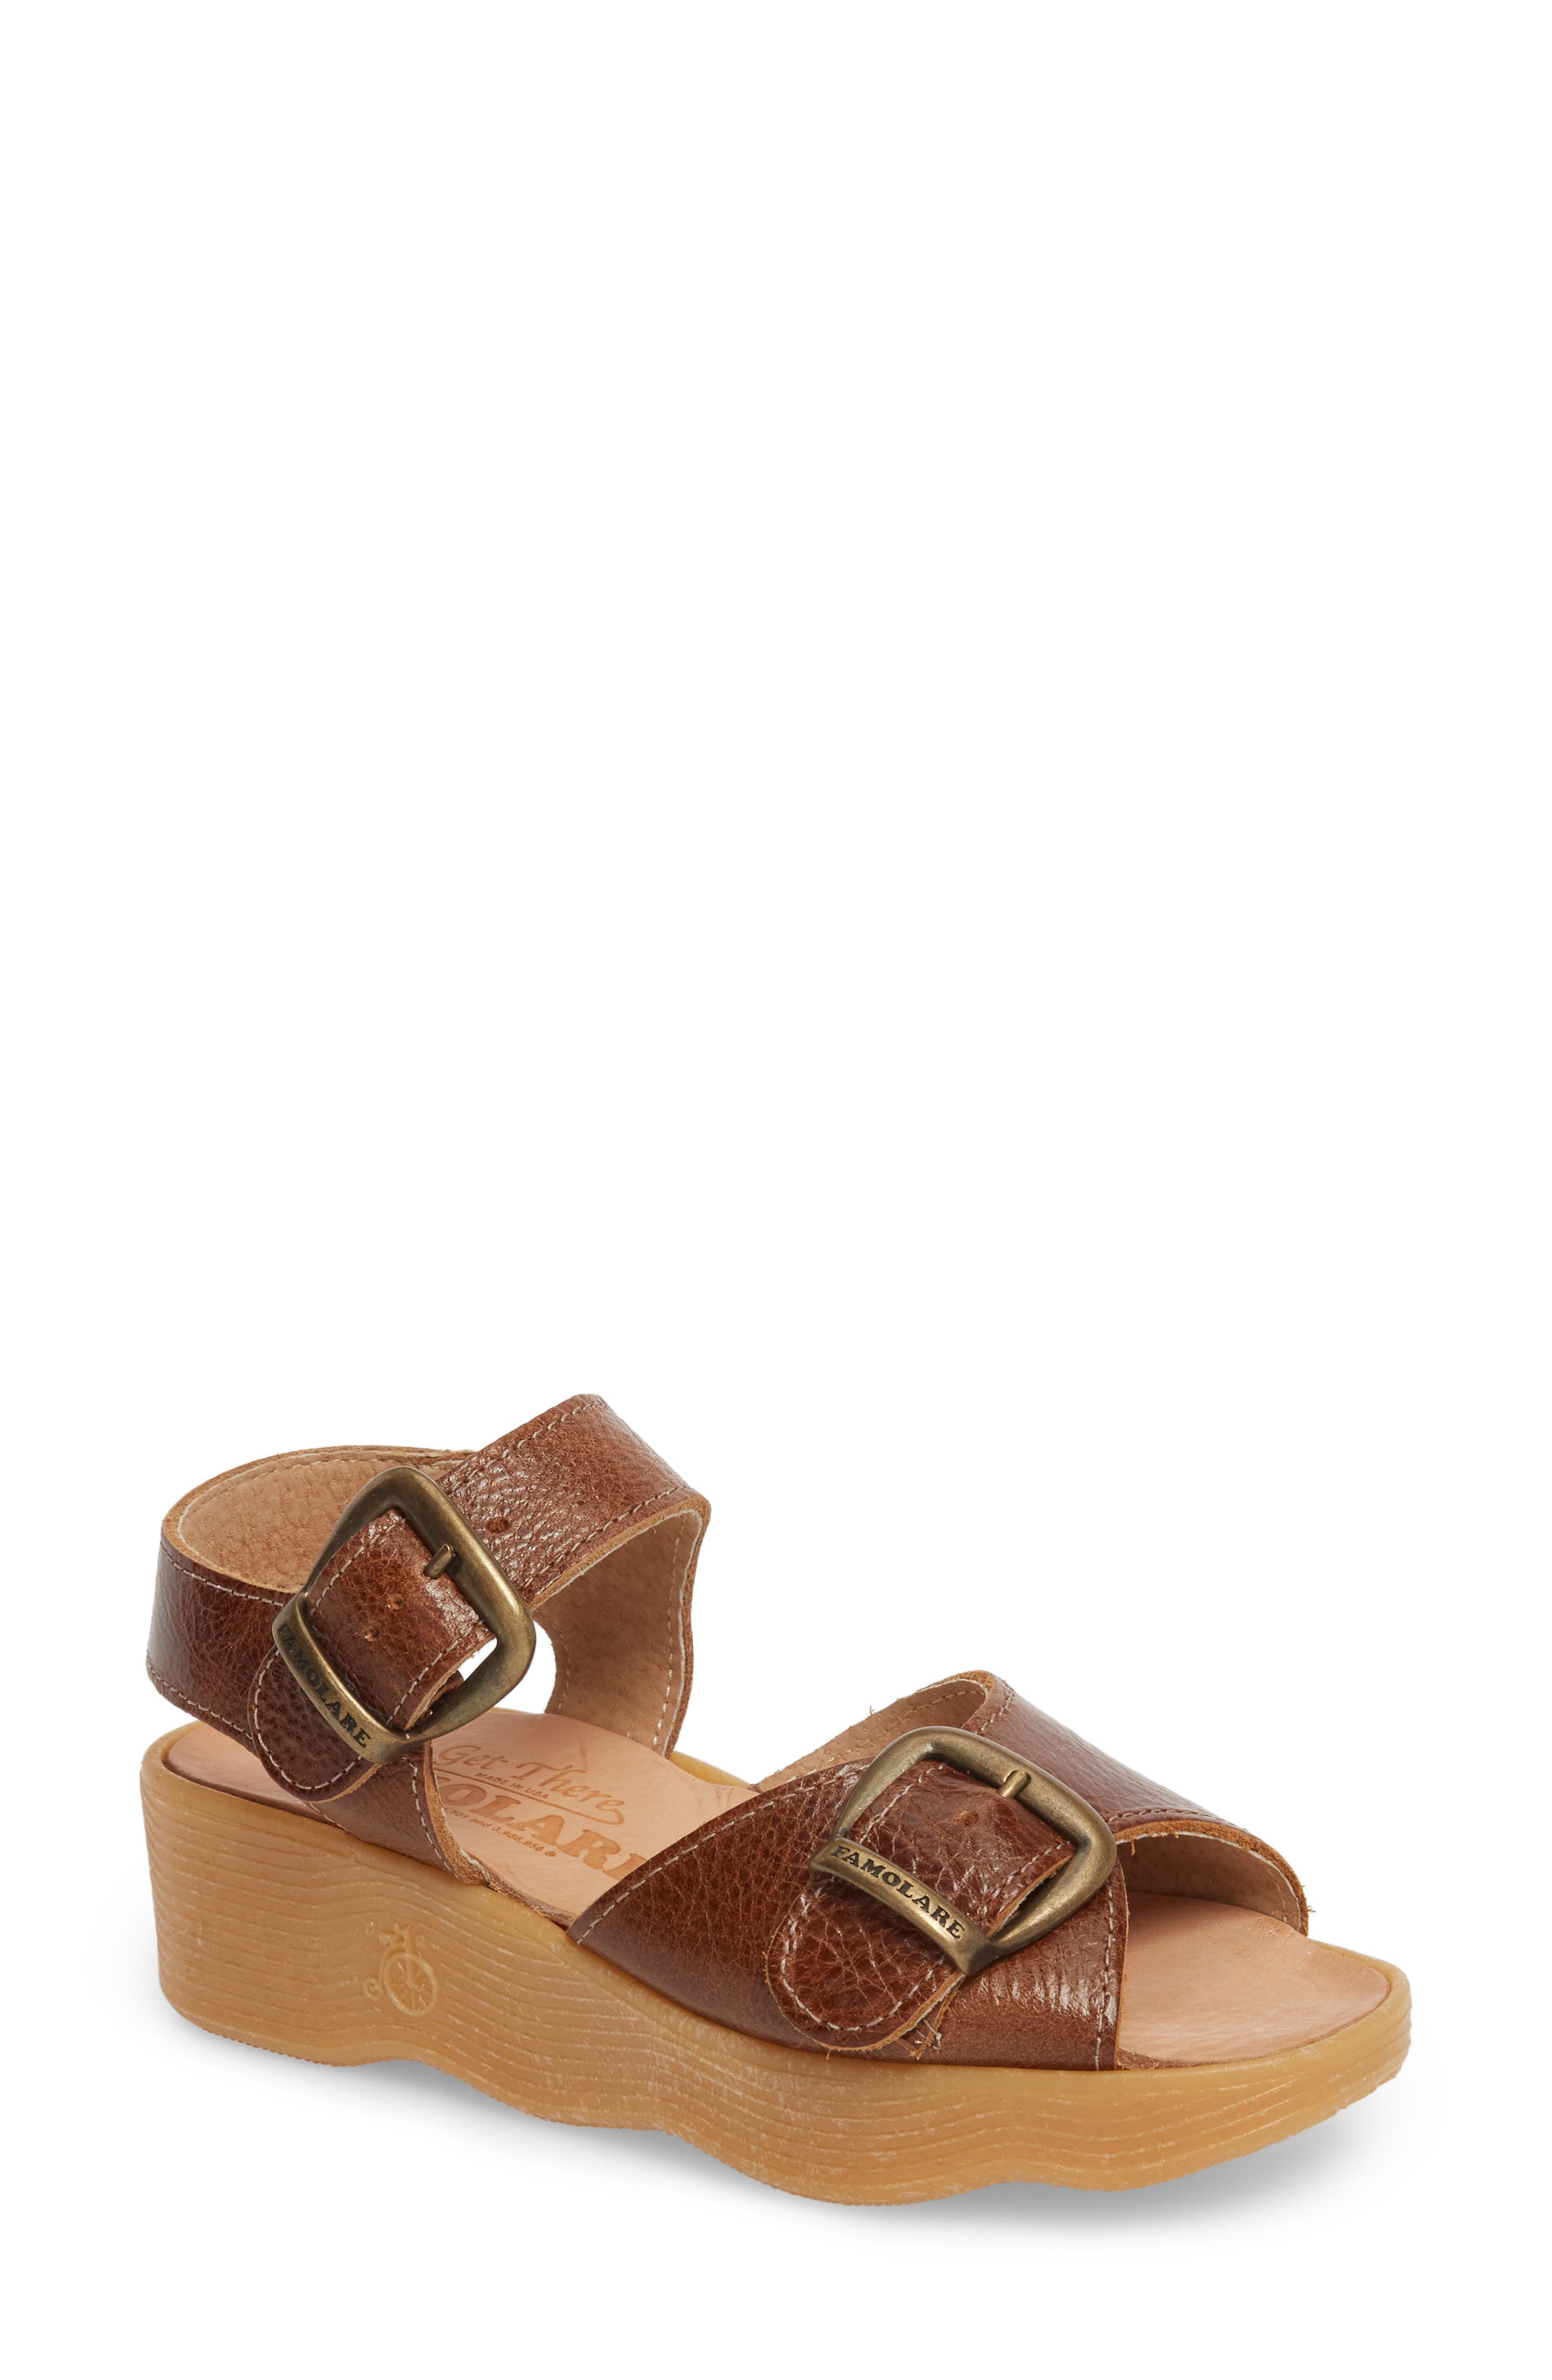 Double Play Platform Sandal,                         Main,                         color, Earth Leather